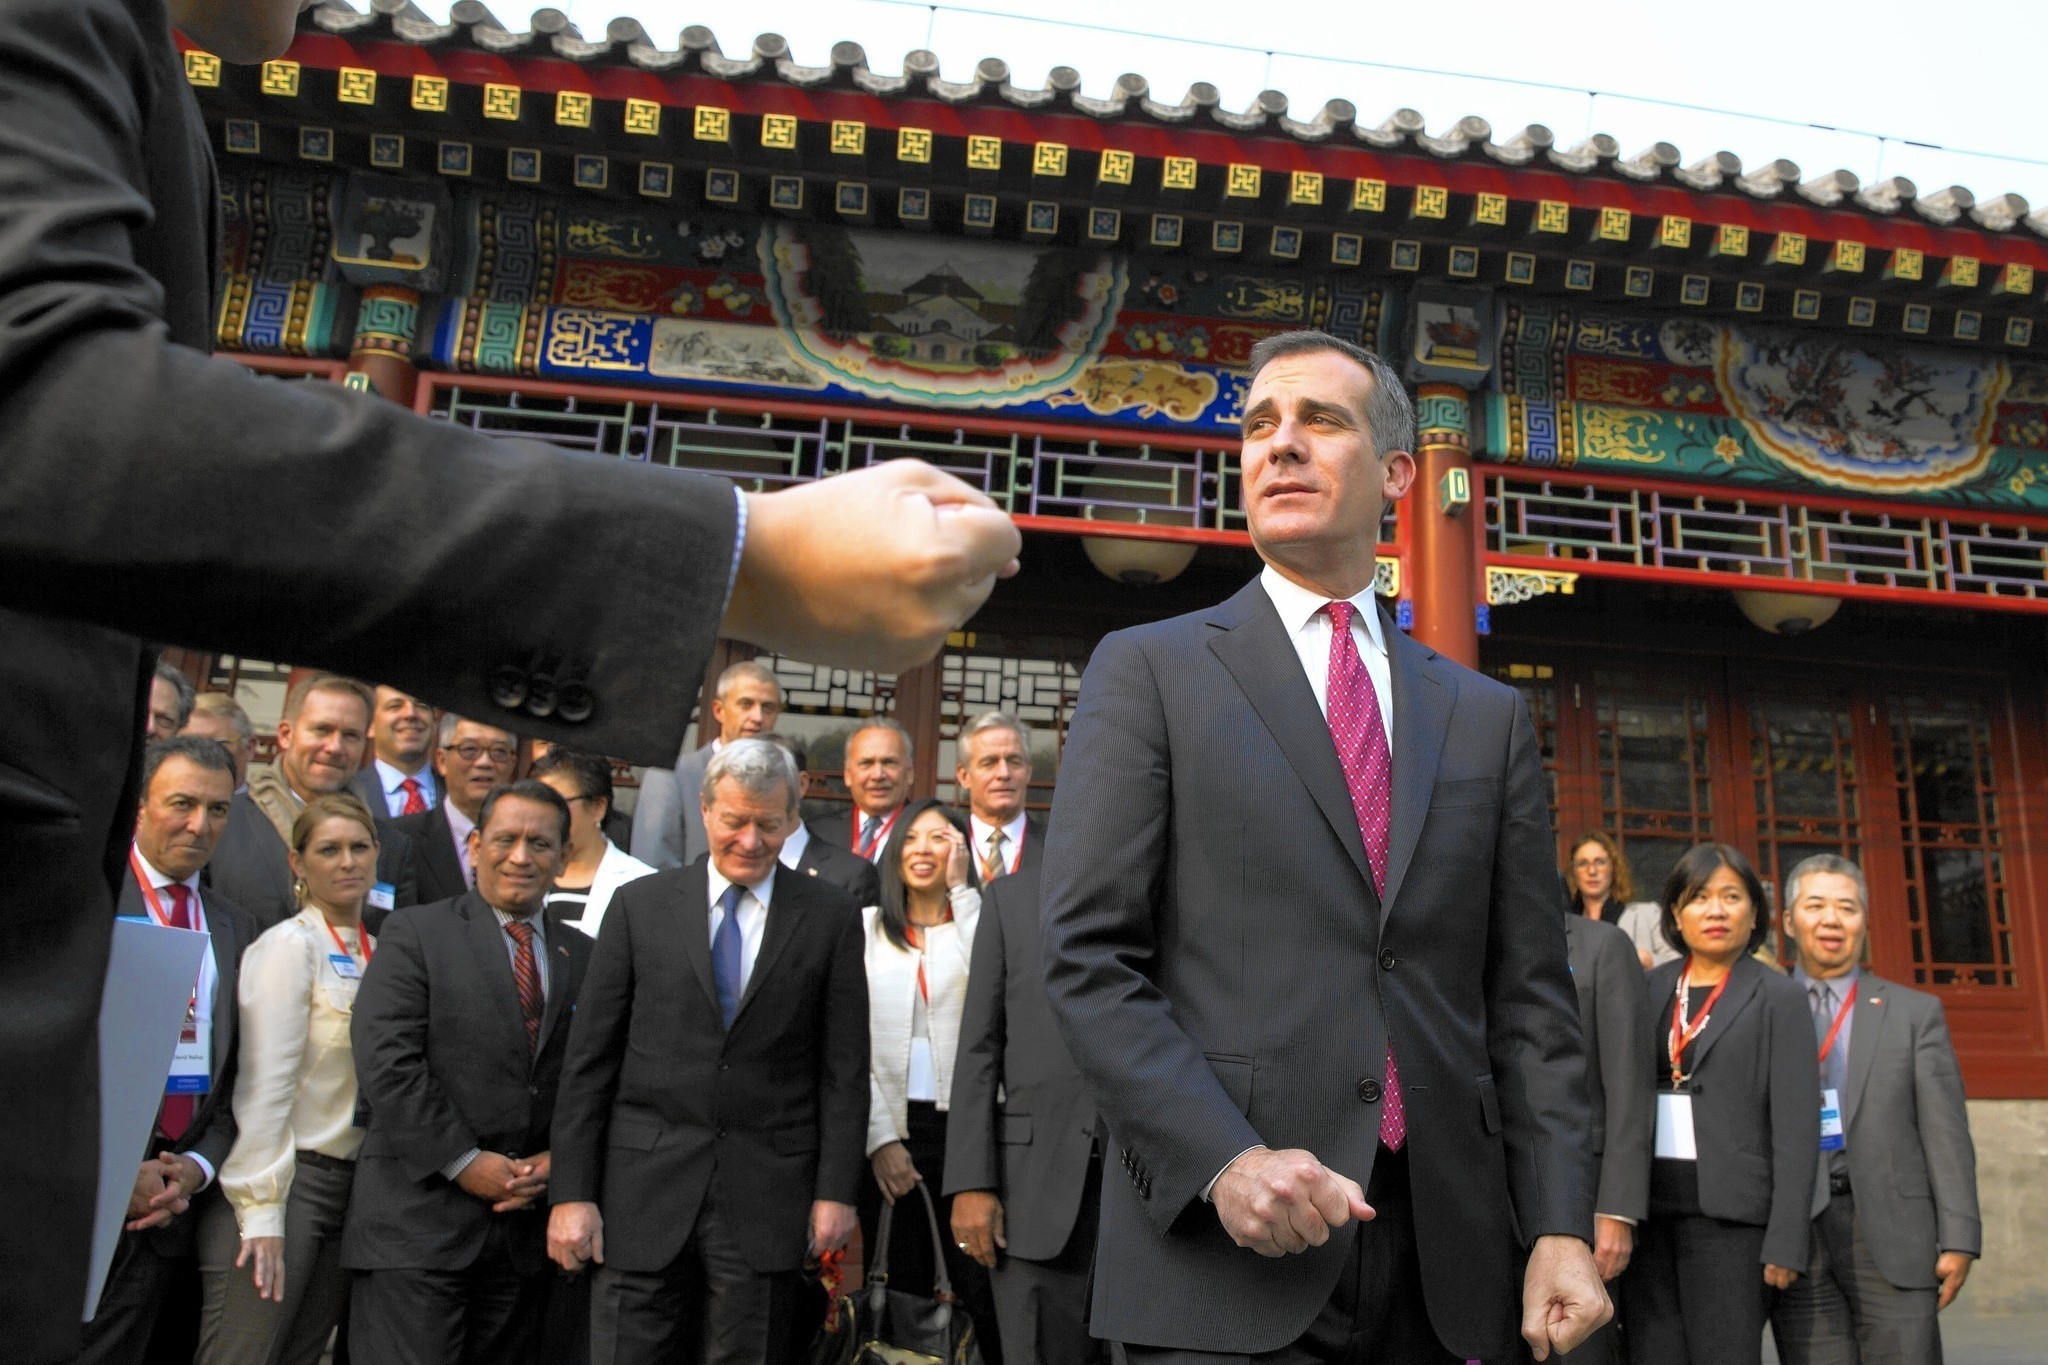 L.A. will host Chinese, U.S. summit to launch carbon emissions cuts